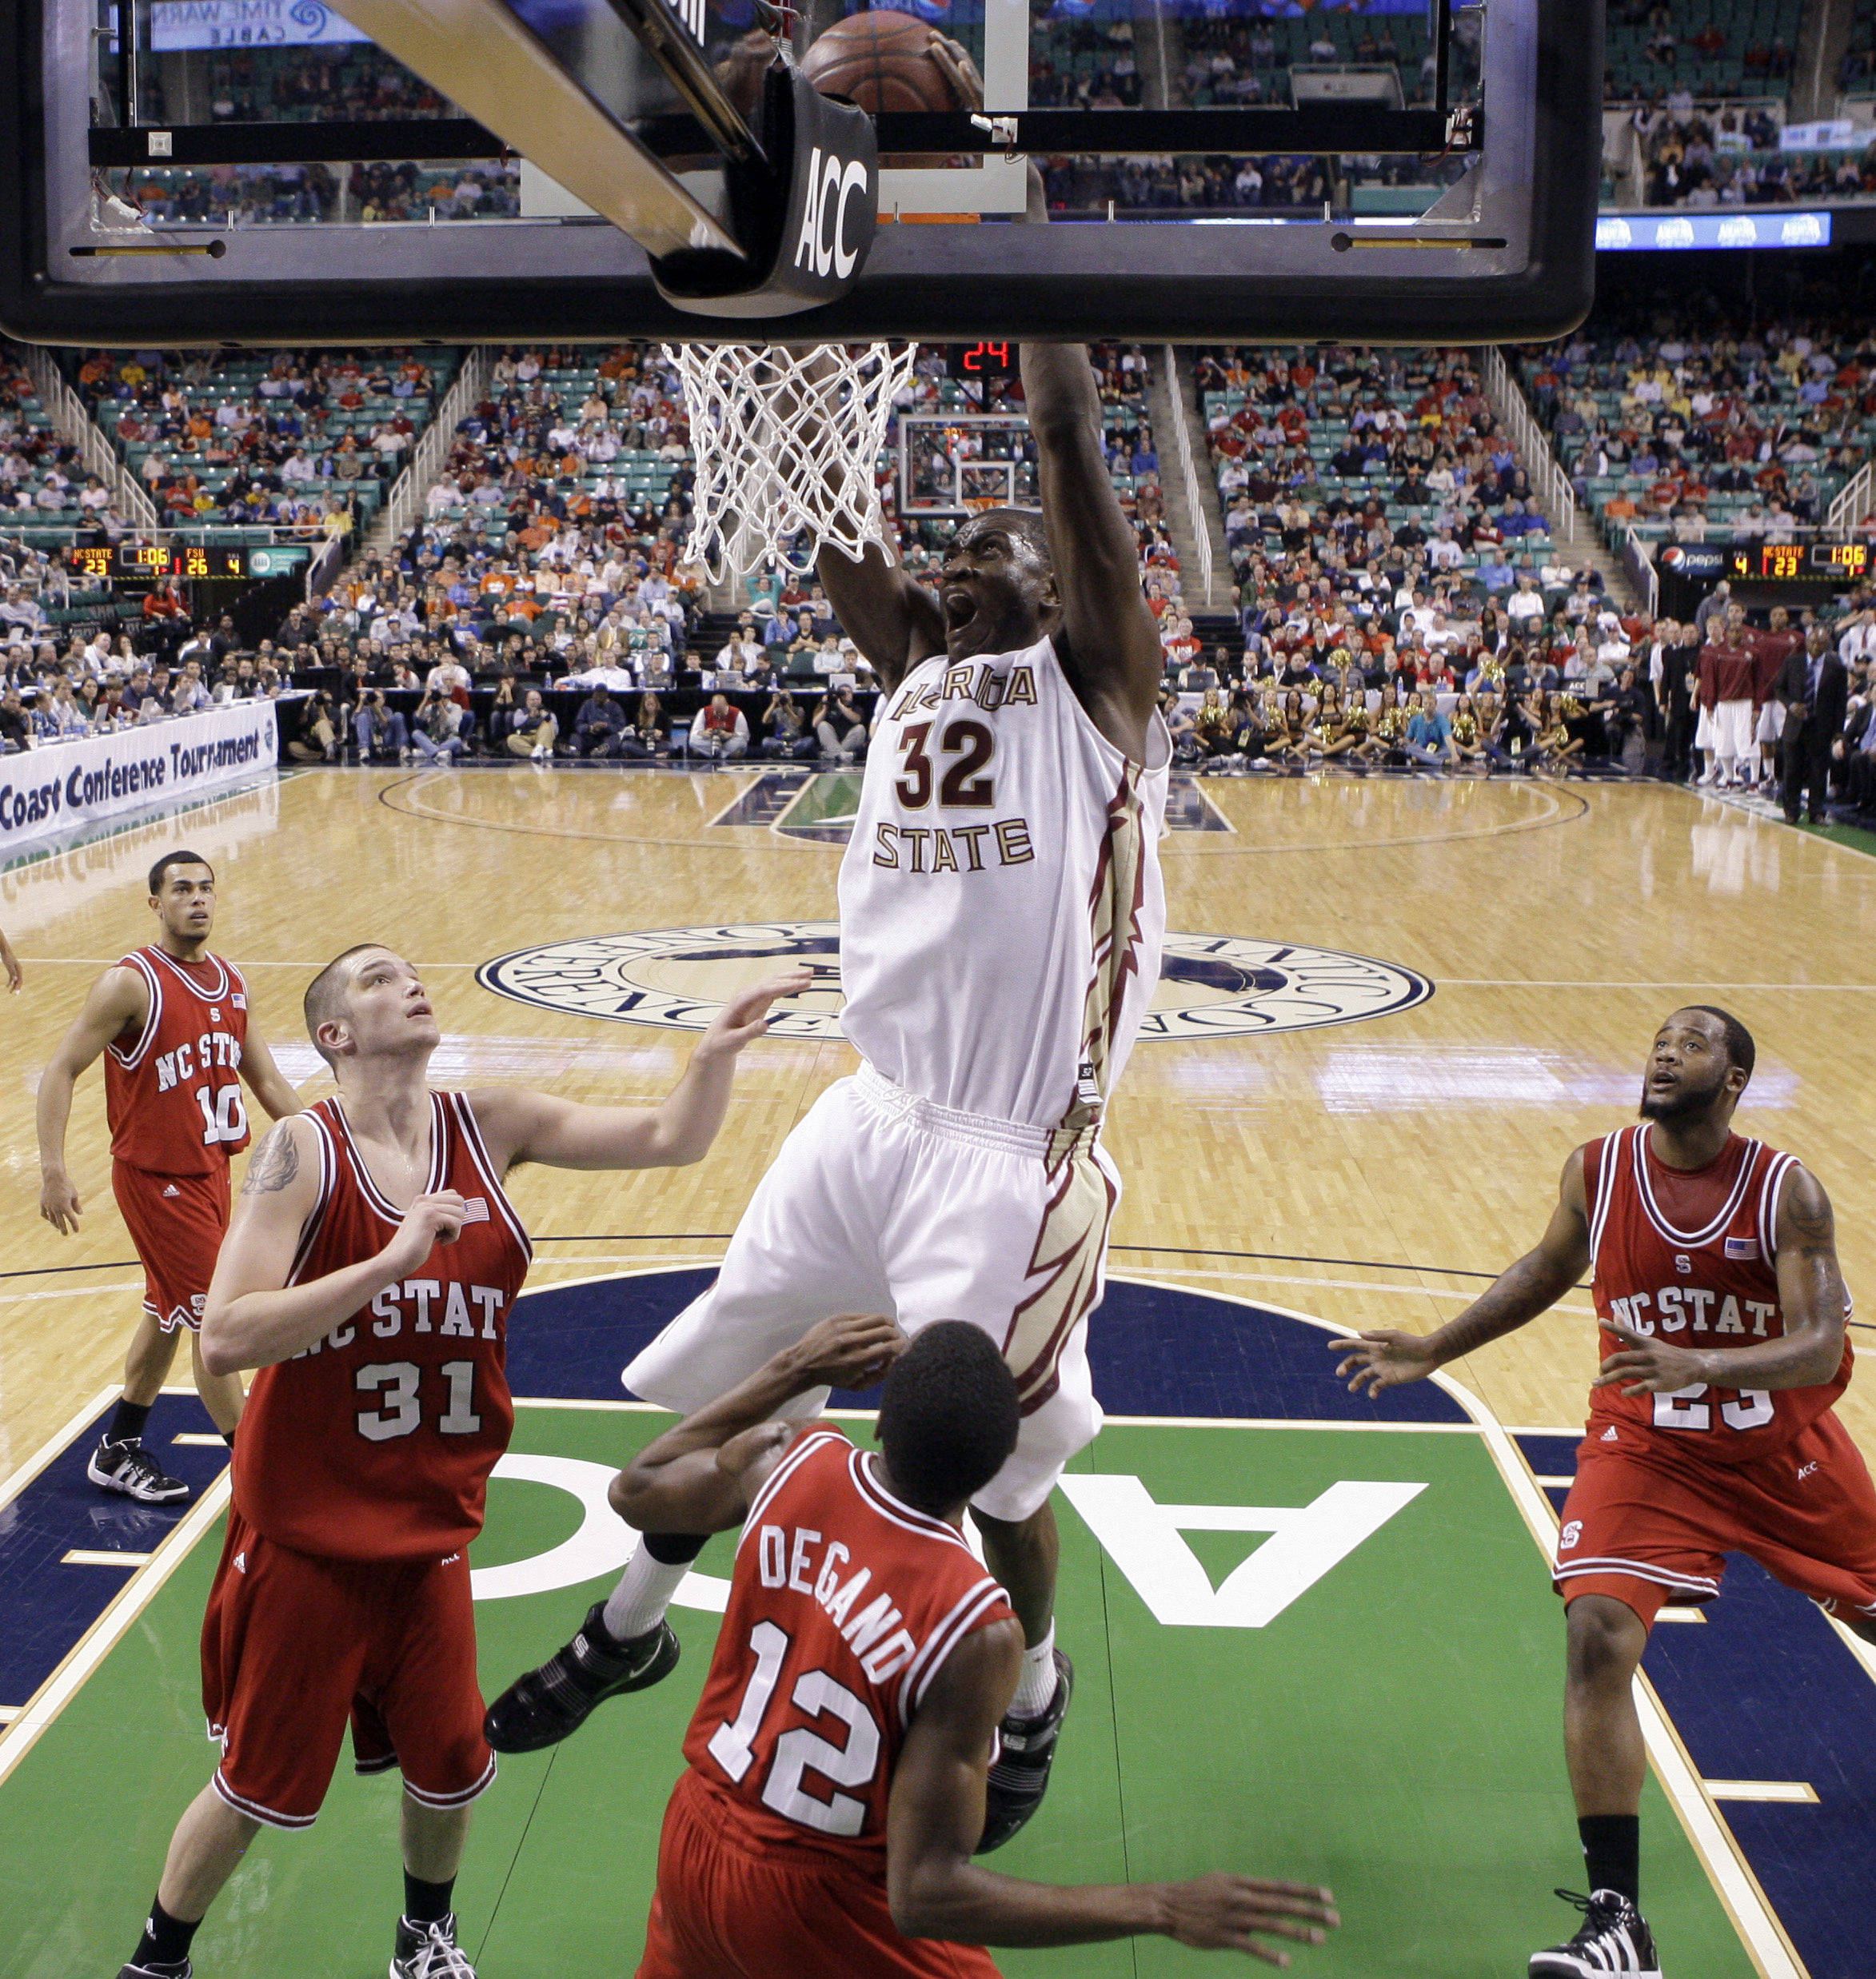 Florida State's Solomon Alabi (32) dunks the ball as North Carolina State's Dennis Horner (31) Farnold Degand (12) and Tracy Smith (23) look on during the first half of an NCAA college basketball game in the Atlantic Coast Conference tournament in Greensboro, N.C., Friday, March 12, 2010. (AP Photo/Chuck Burton)